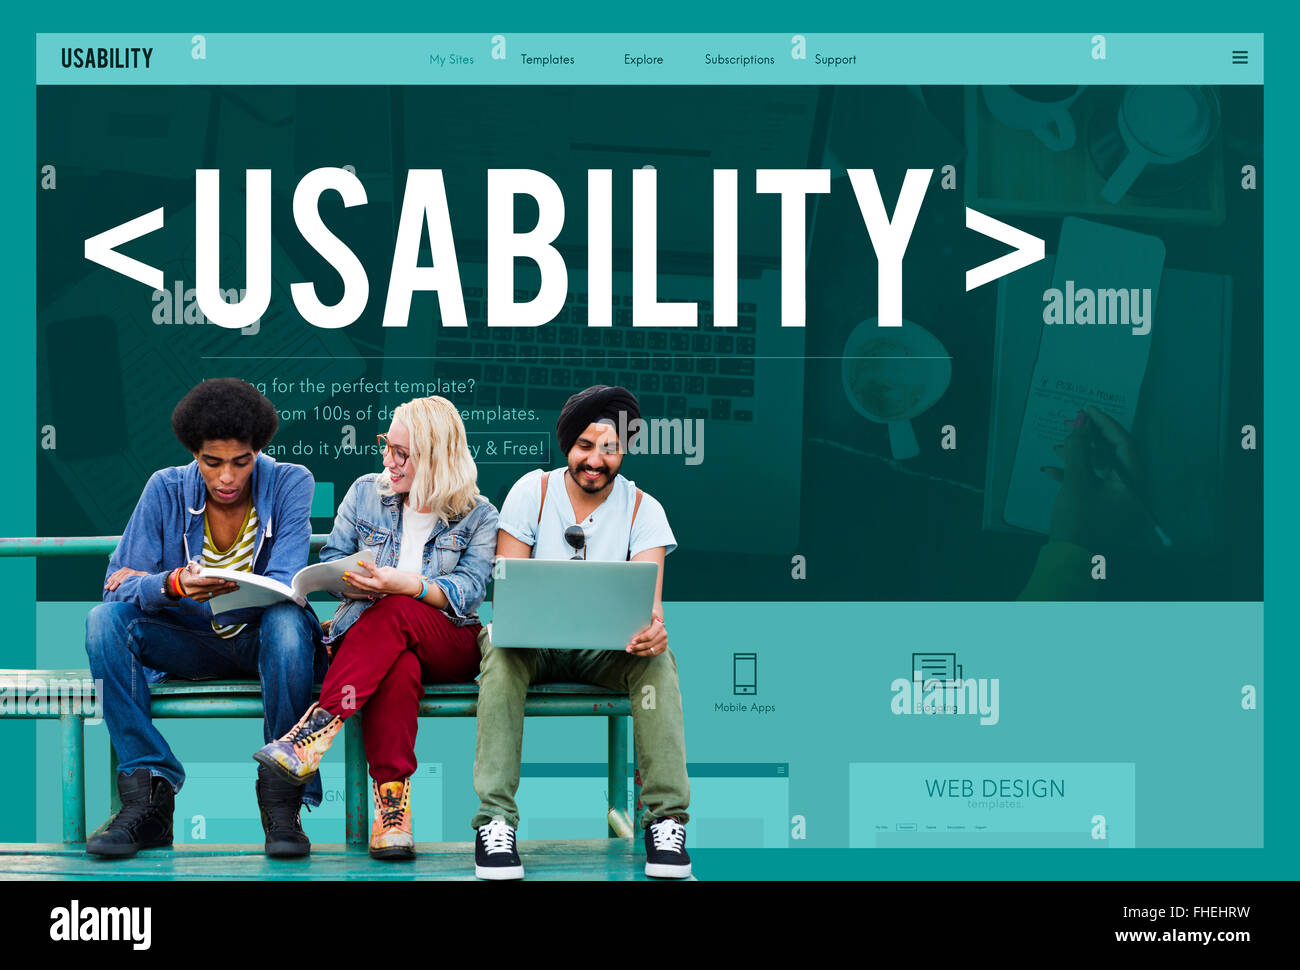 Usability Capability Purpose Quality Usefulness Concept - Stock Image